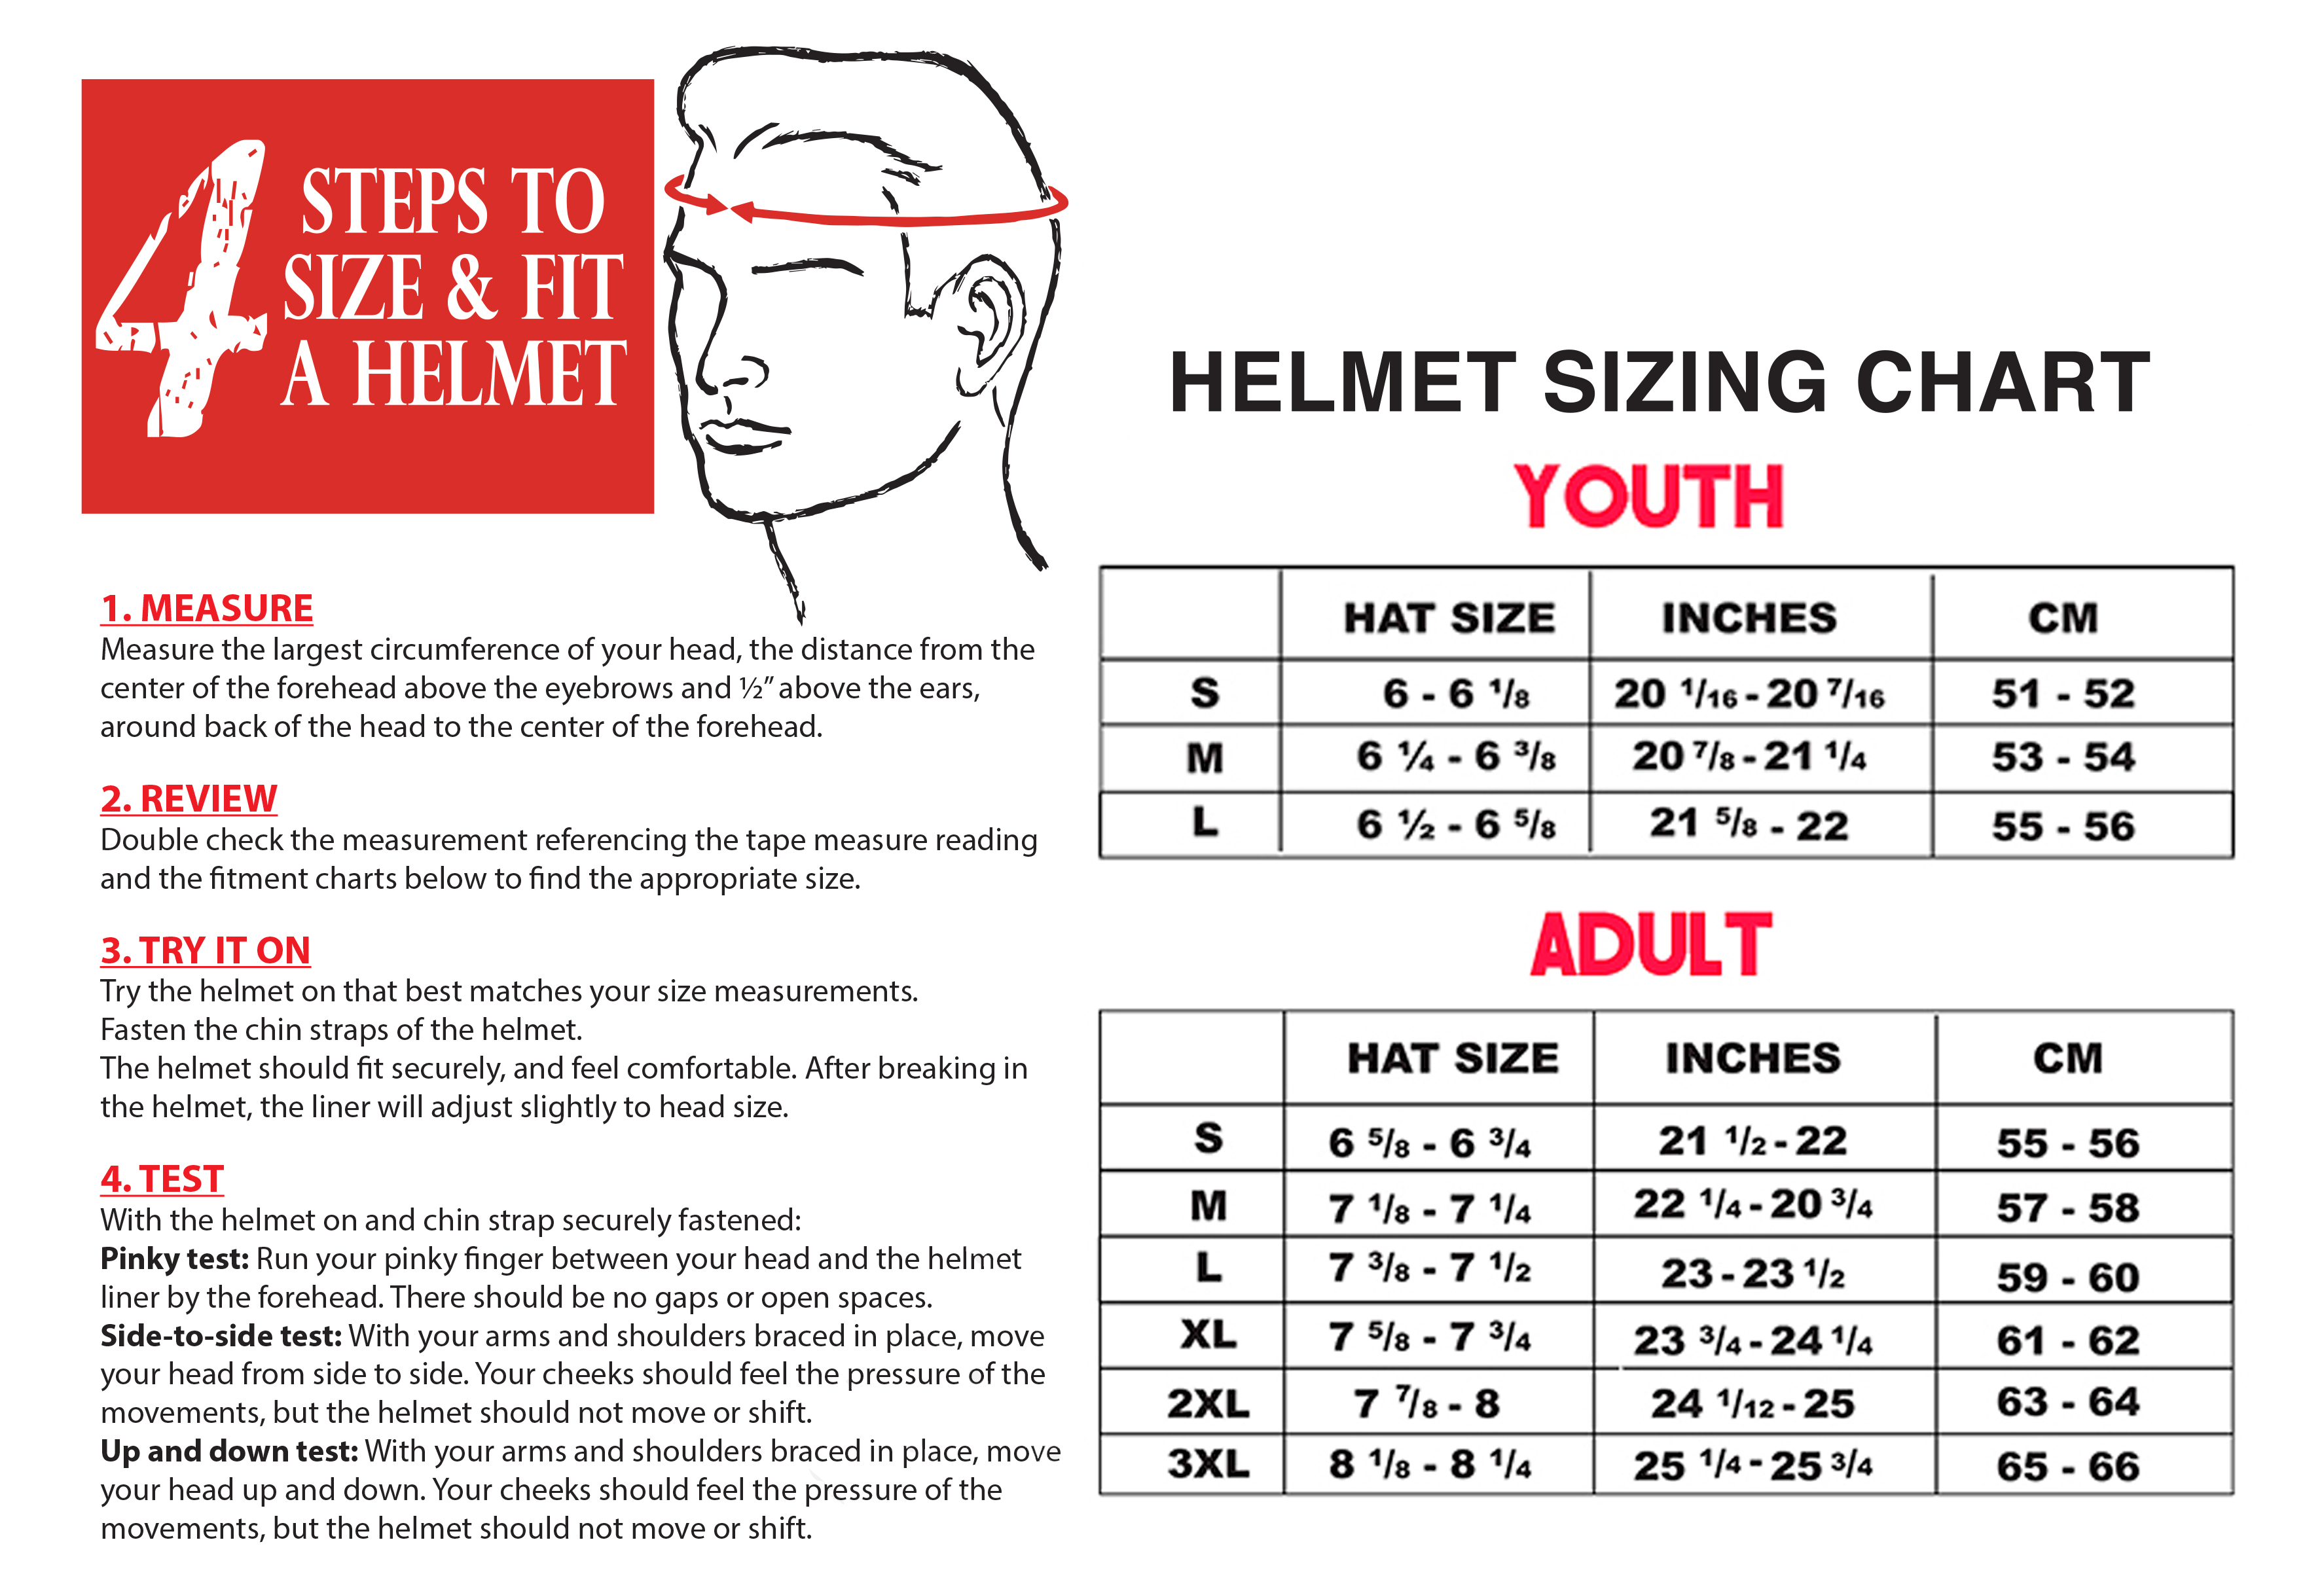 Helmet Fitting/Size Chart